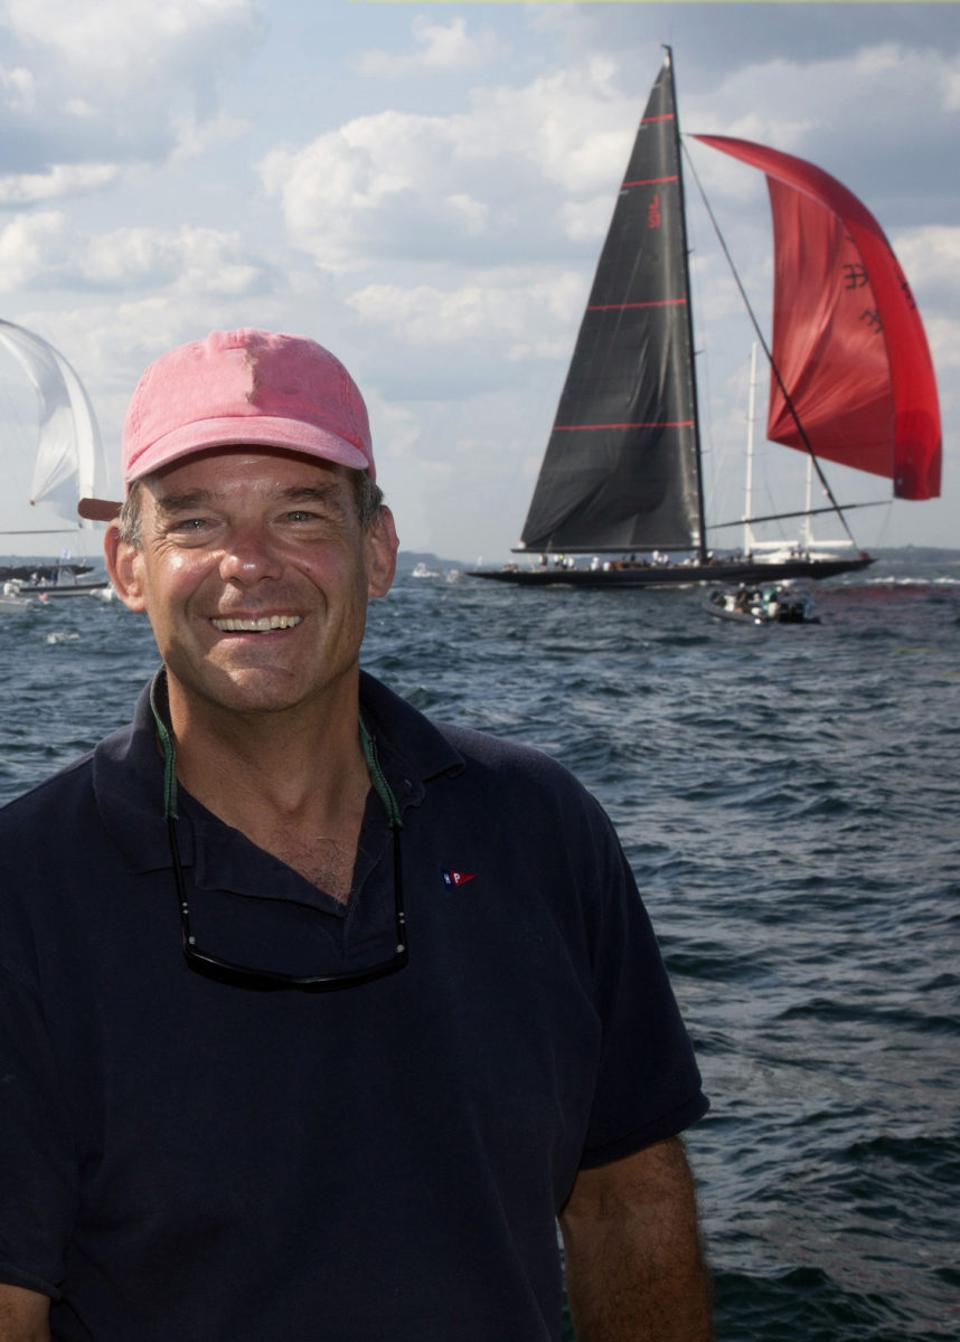 Scott Smith the owner and founder of Boston BoatWorks.